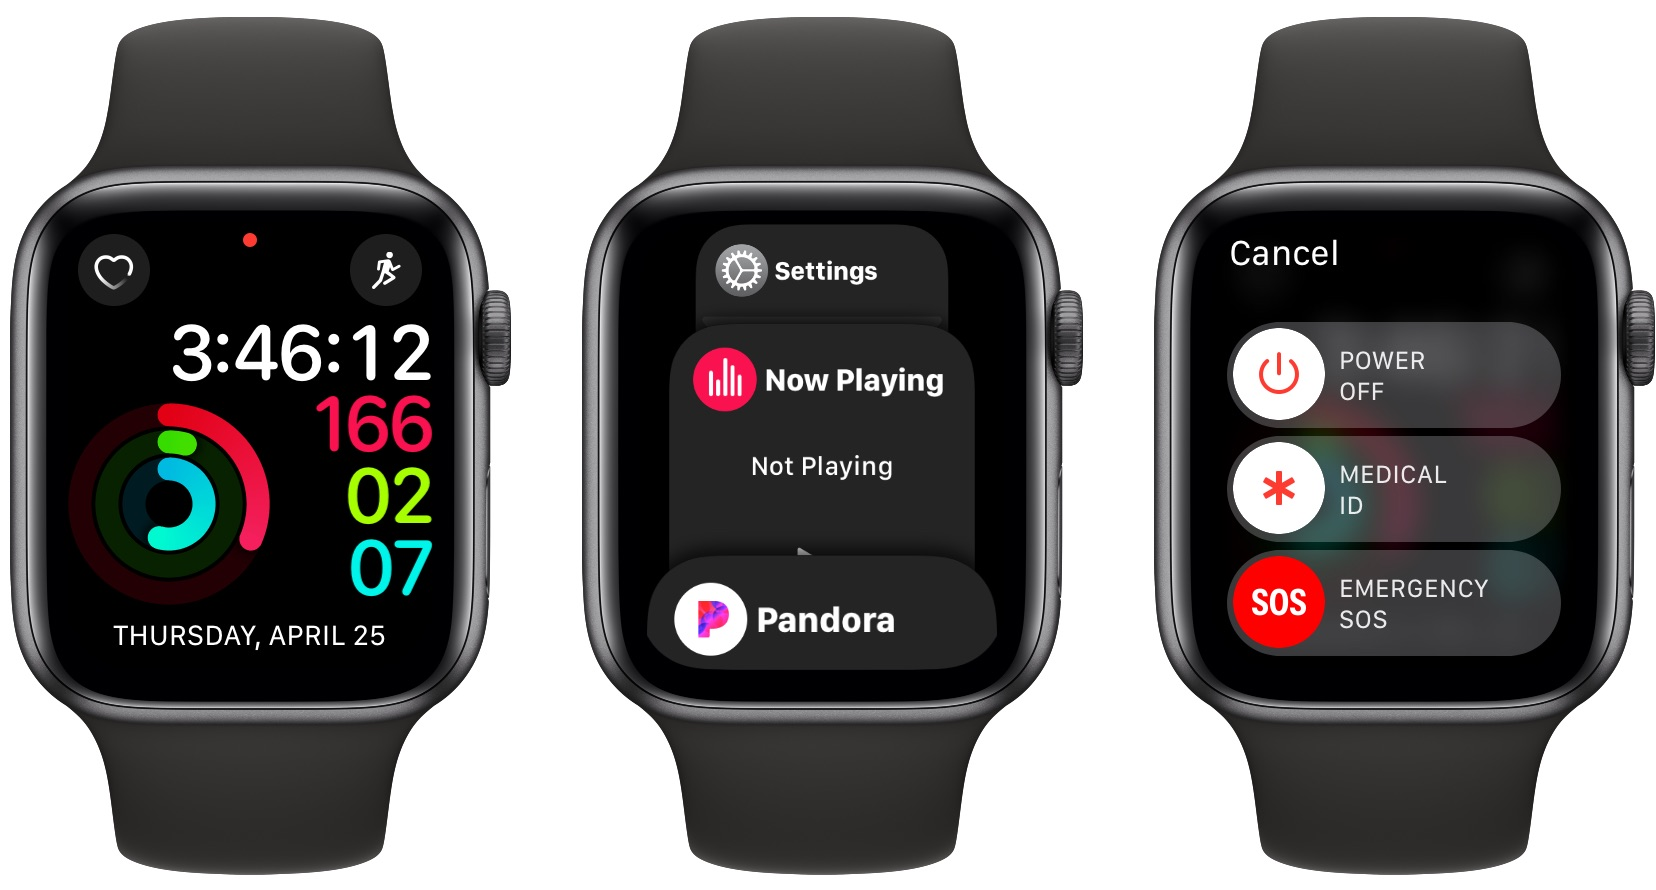 where is the power button on Apple Watch?